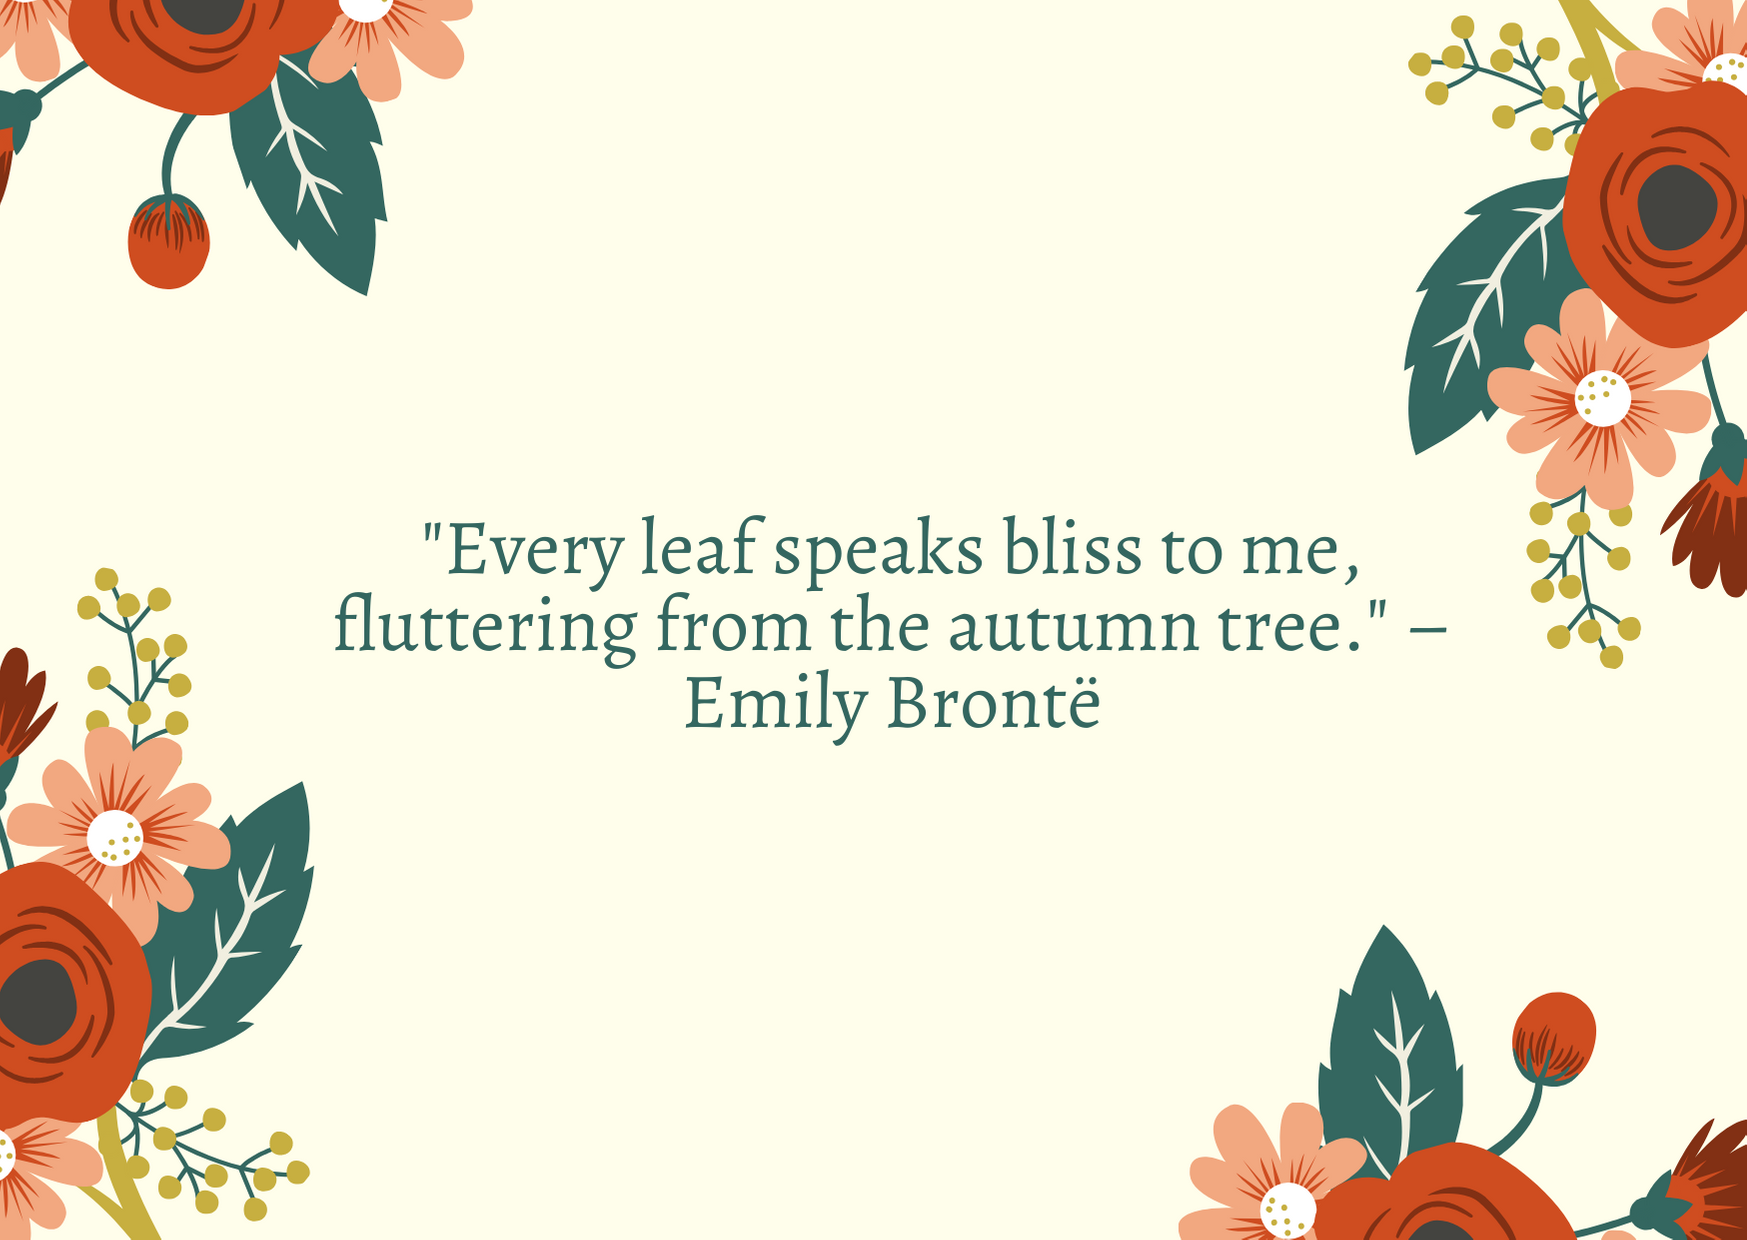 """Every leaf speaks bliss to me, fluttering from the autumn tree."" – Emily Brontë"